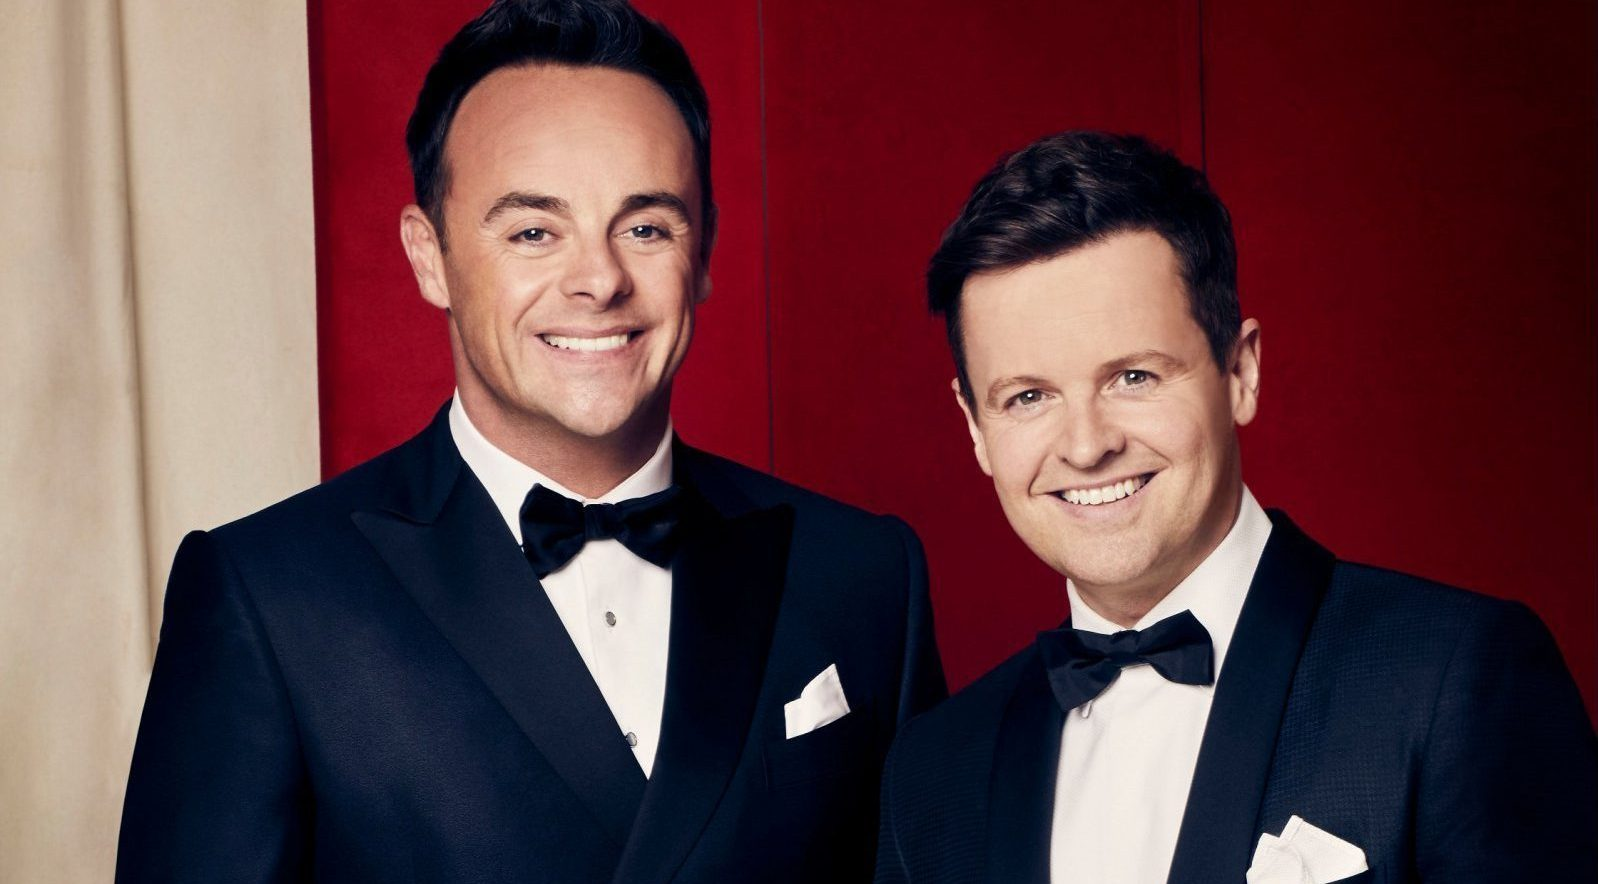 Ant and Dec 'secretly auditioned for Britain's Got Talent' to surprise judges